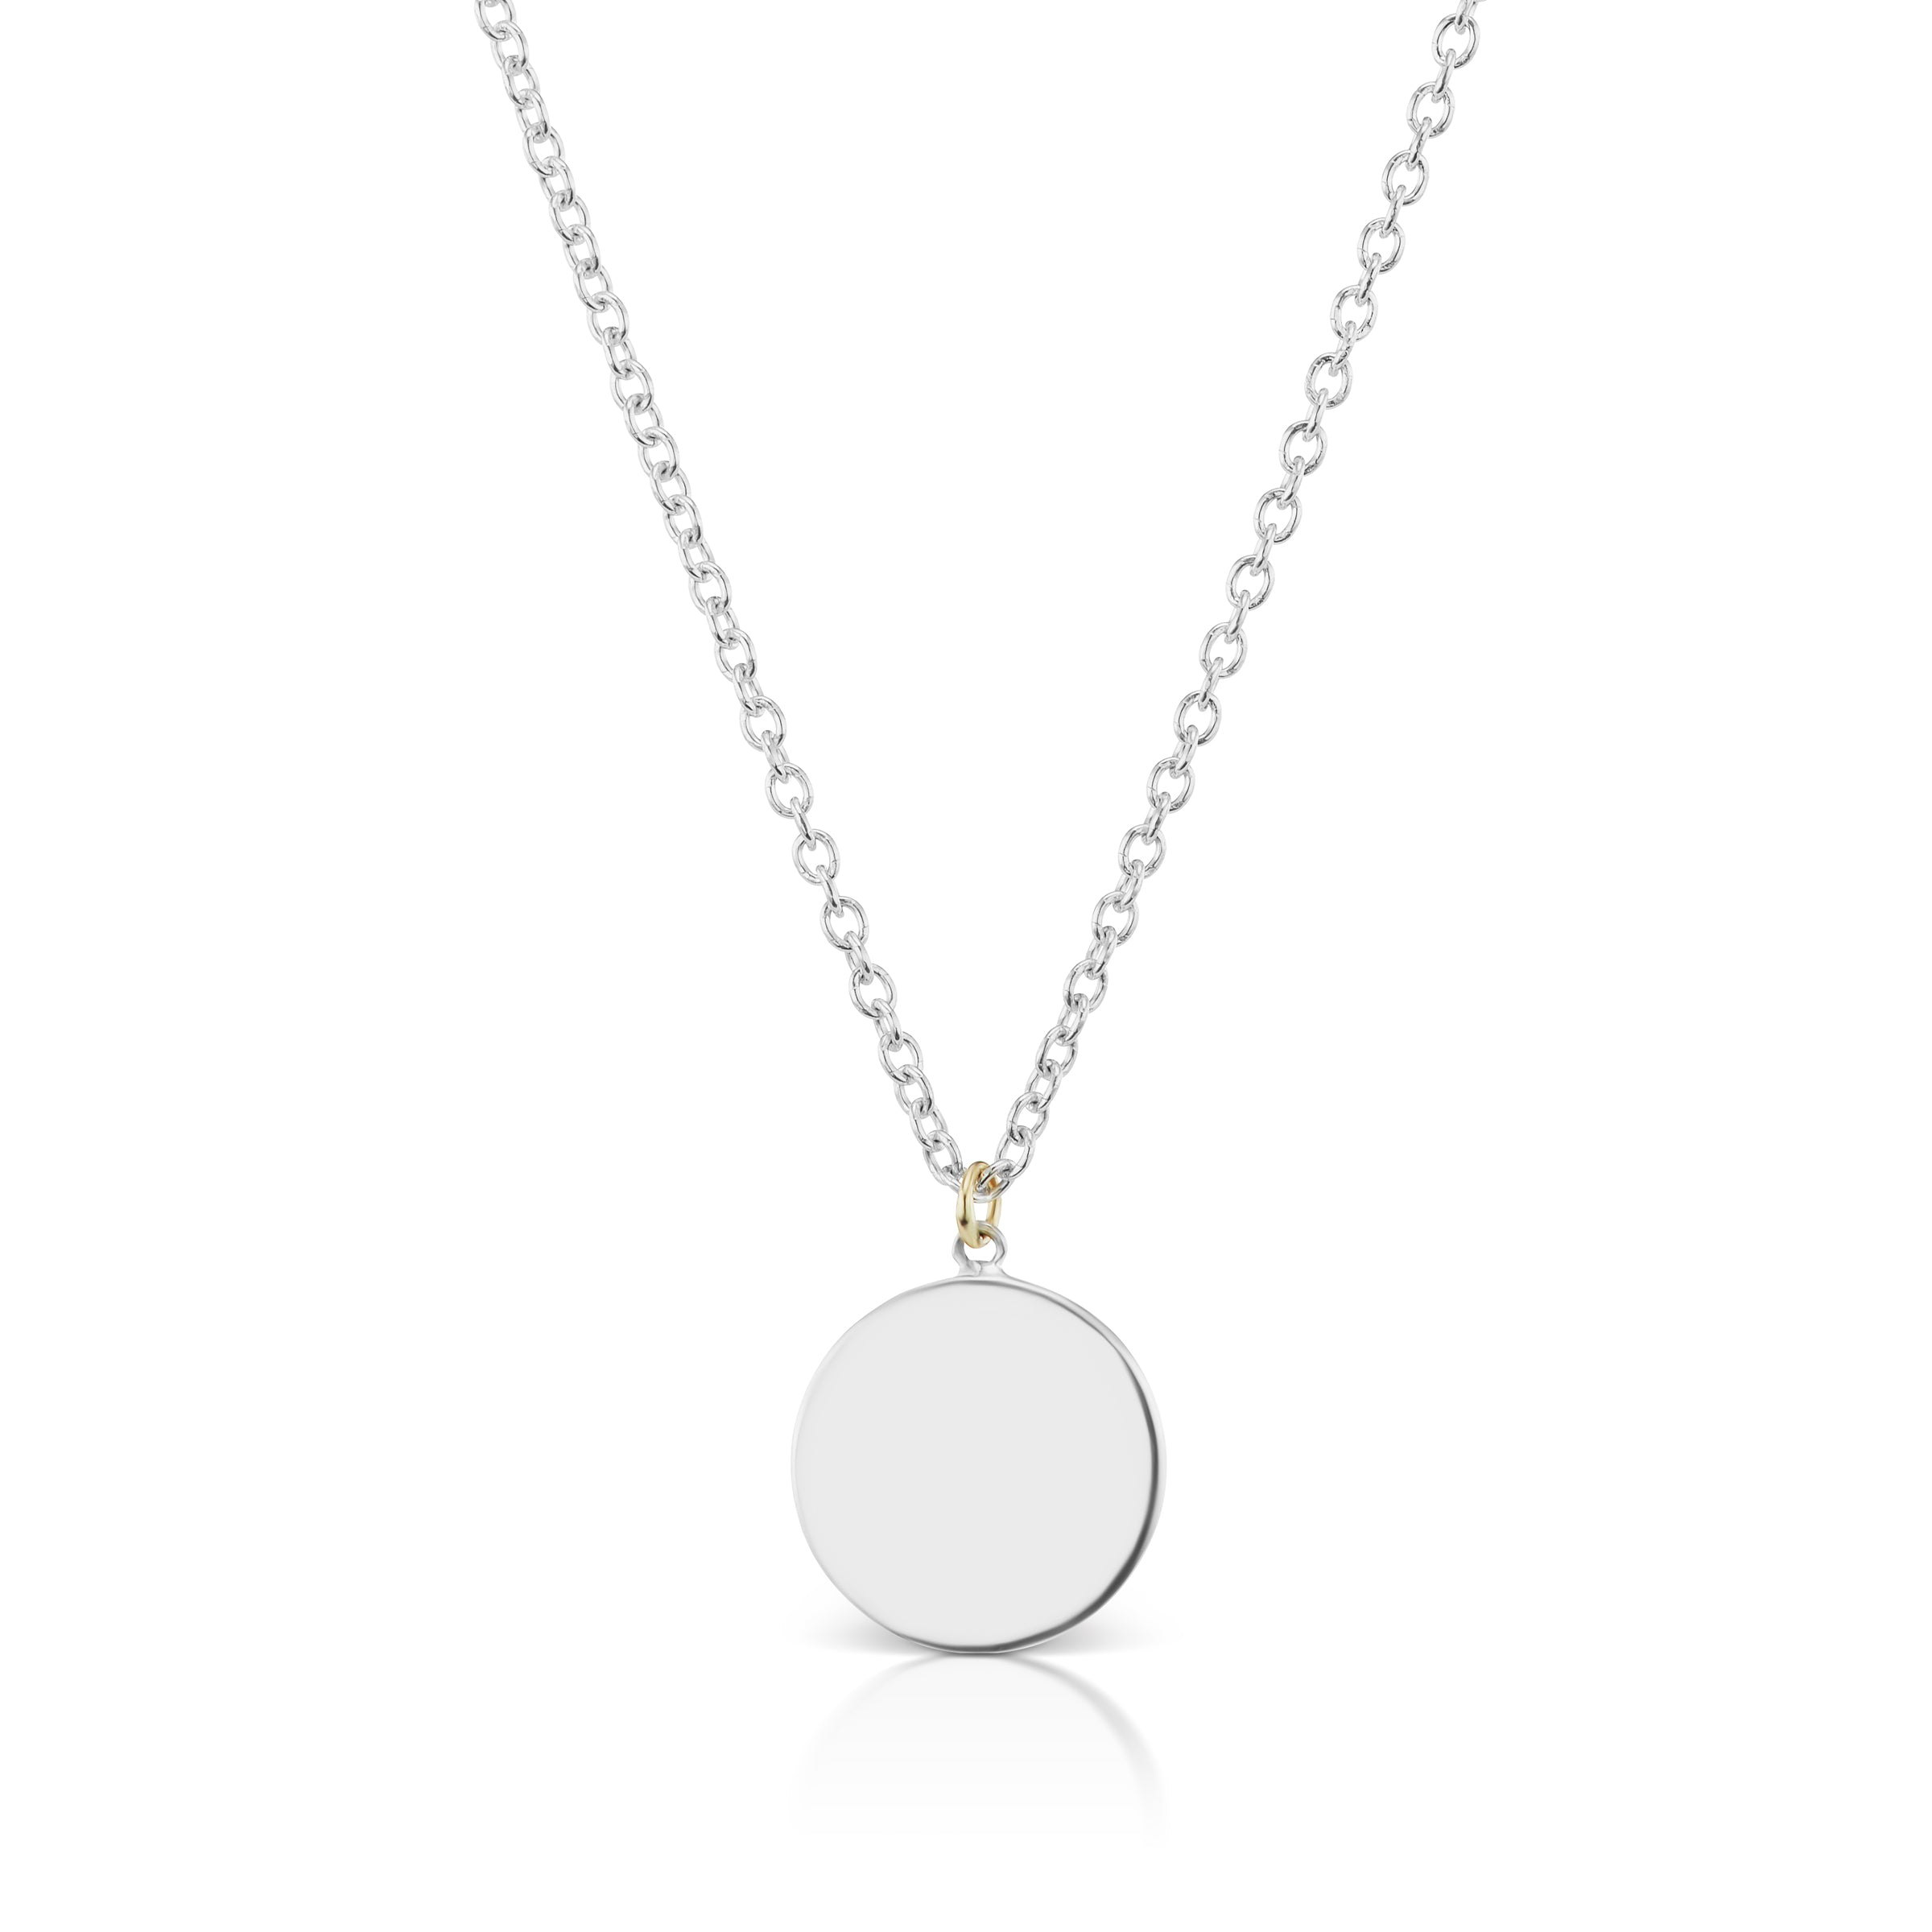 The Silver Signature Necklace